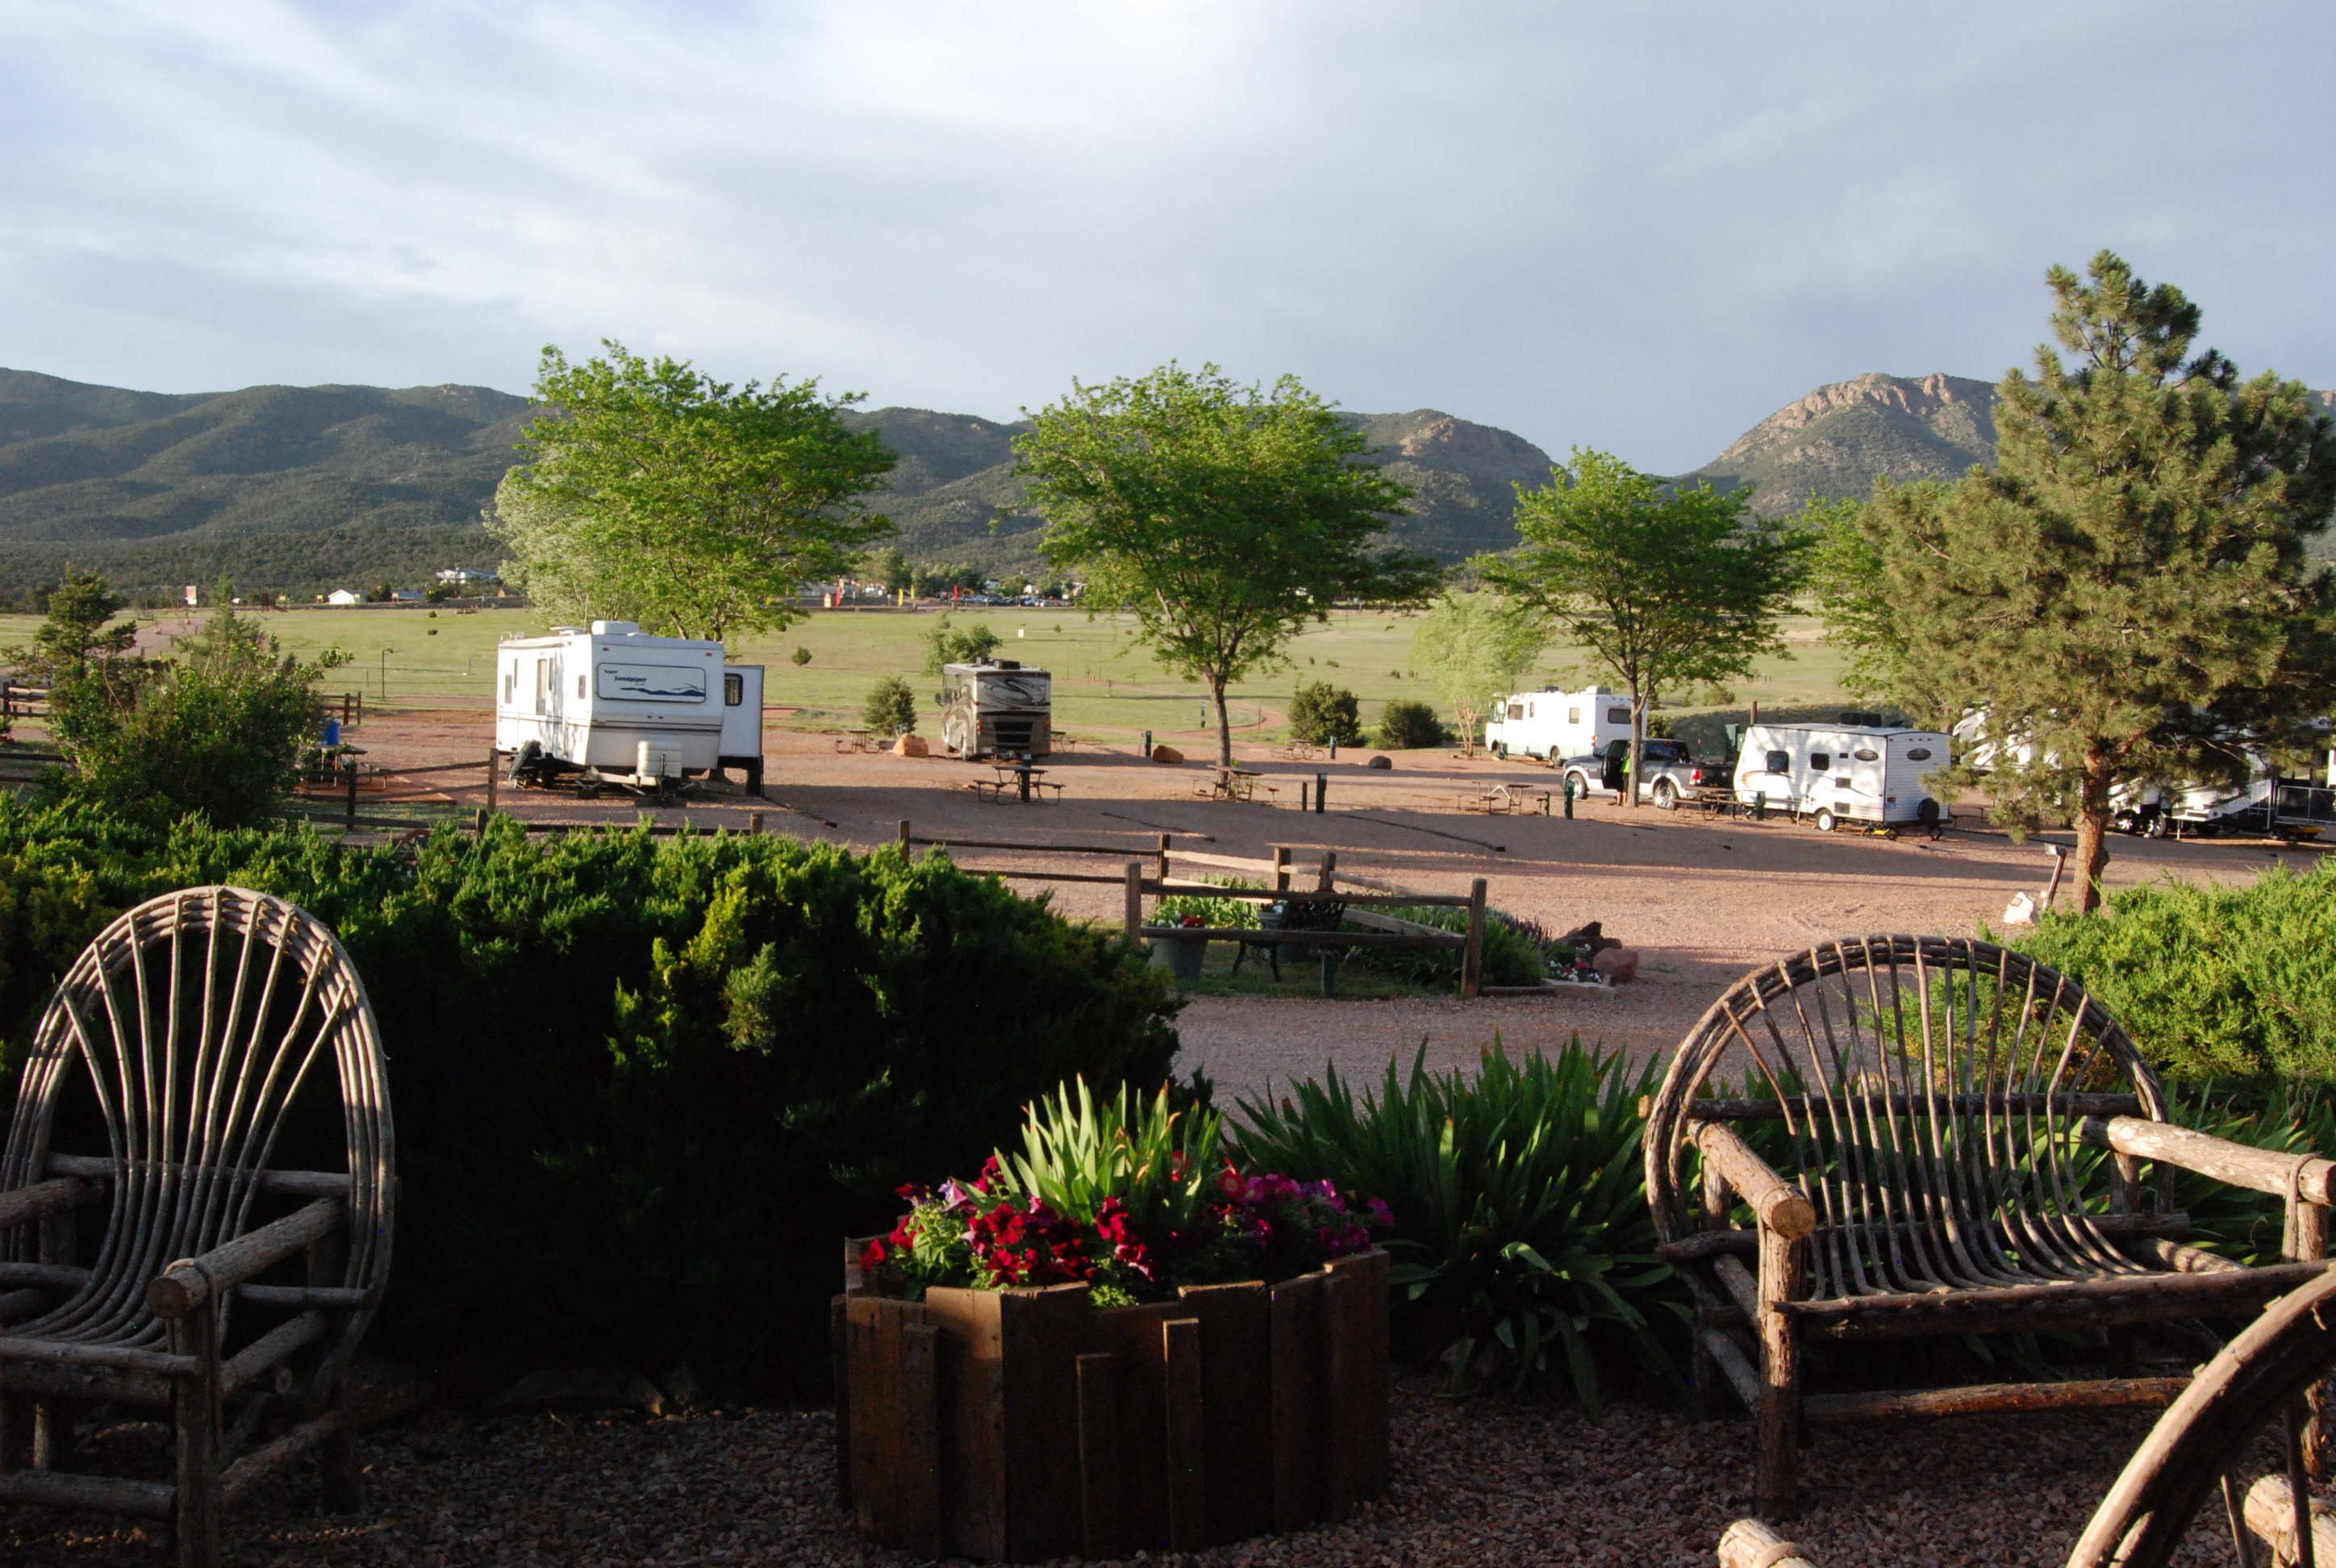 View of the RV sites with trees and blue sky.